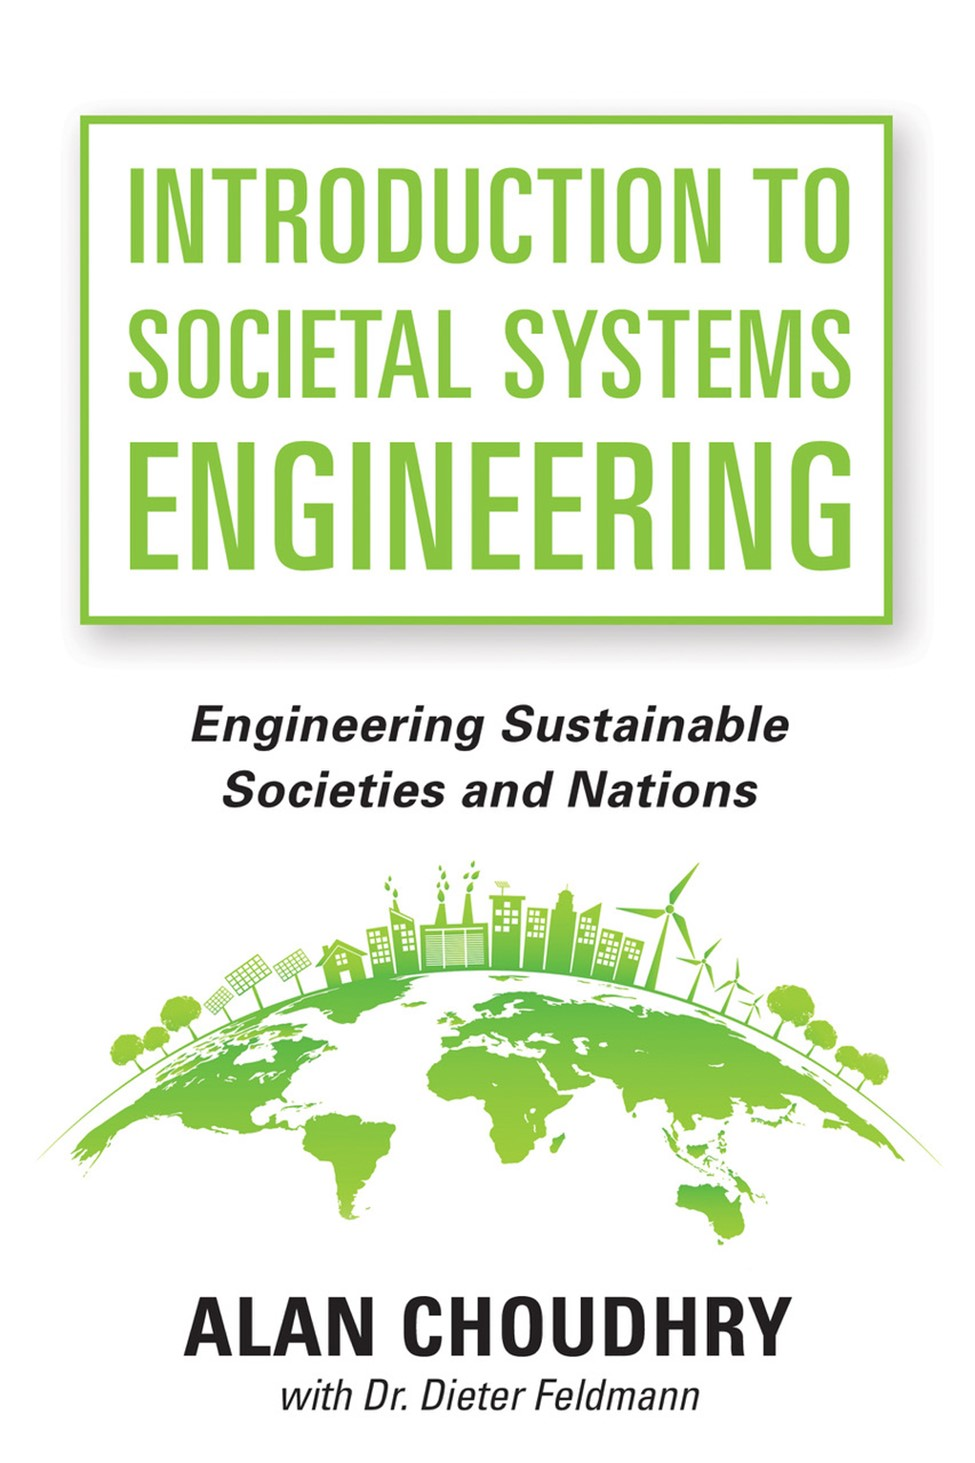 INTRODUCTION TO SOCIETAL SYSTEMS ENGINEERING